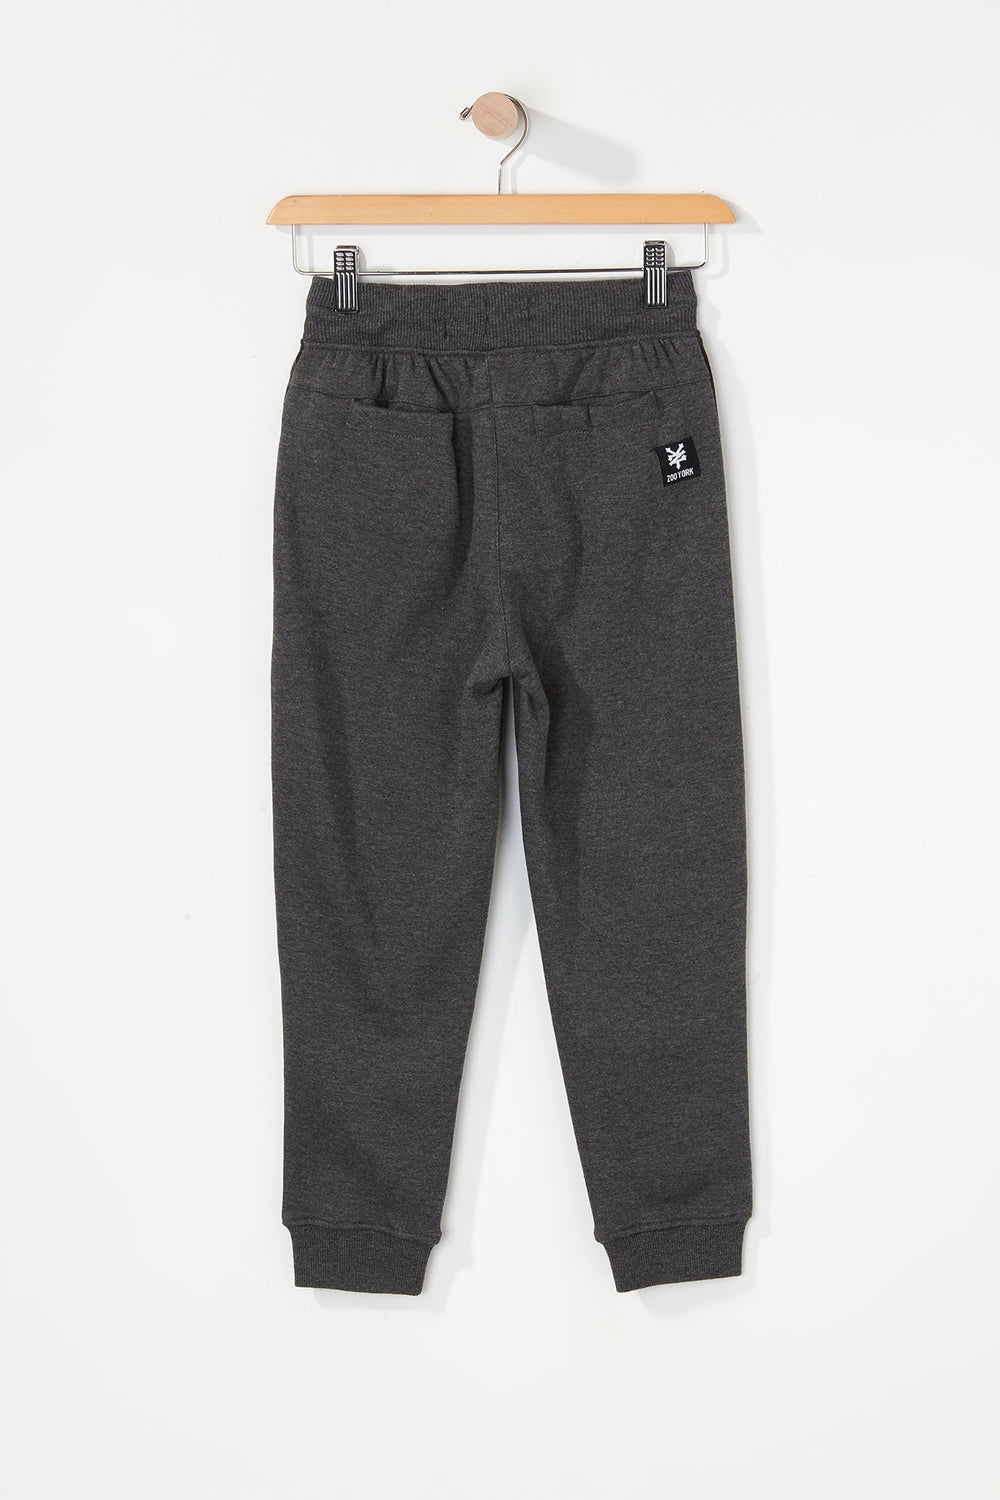 Zoo York Boys Camo Colour Block Jogger Charcoal